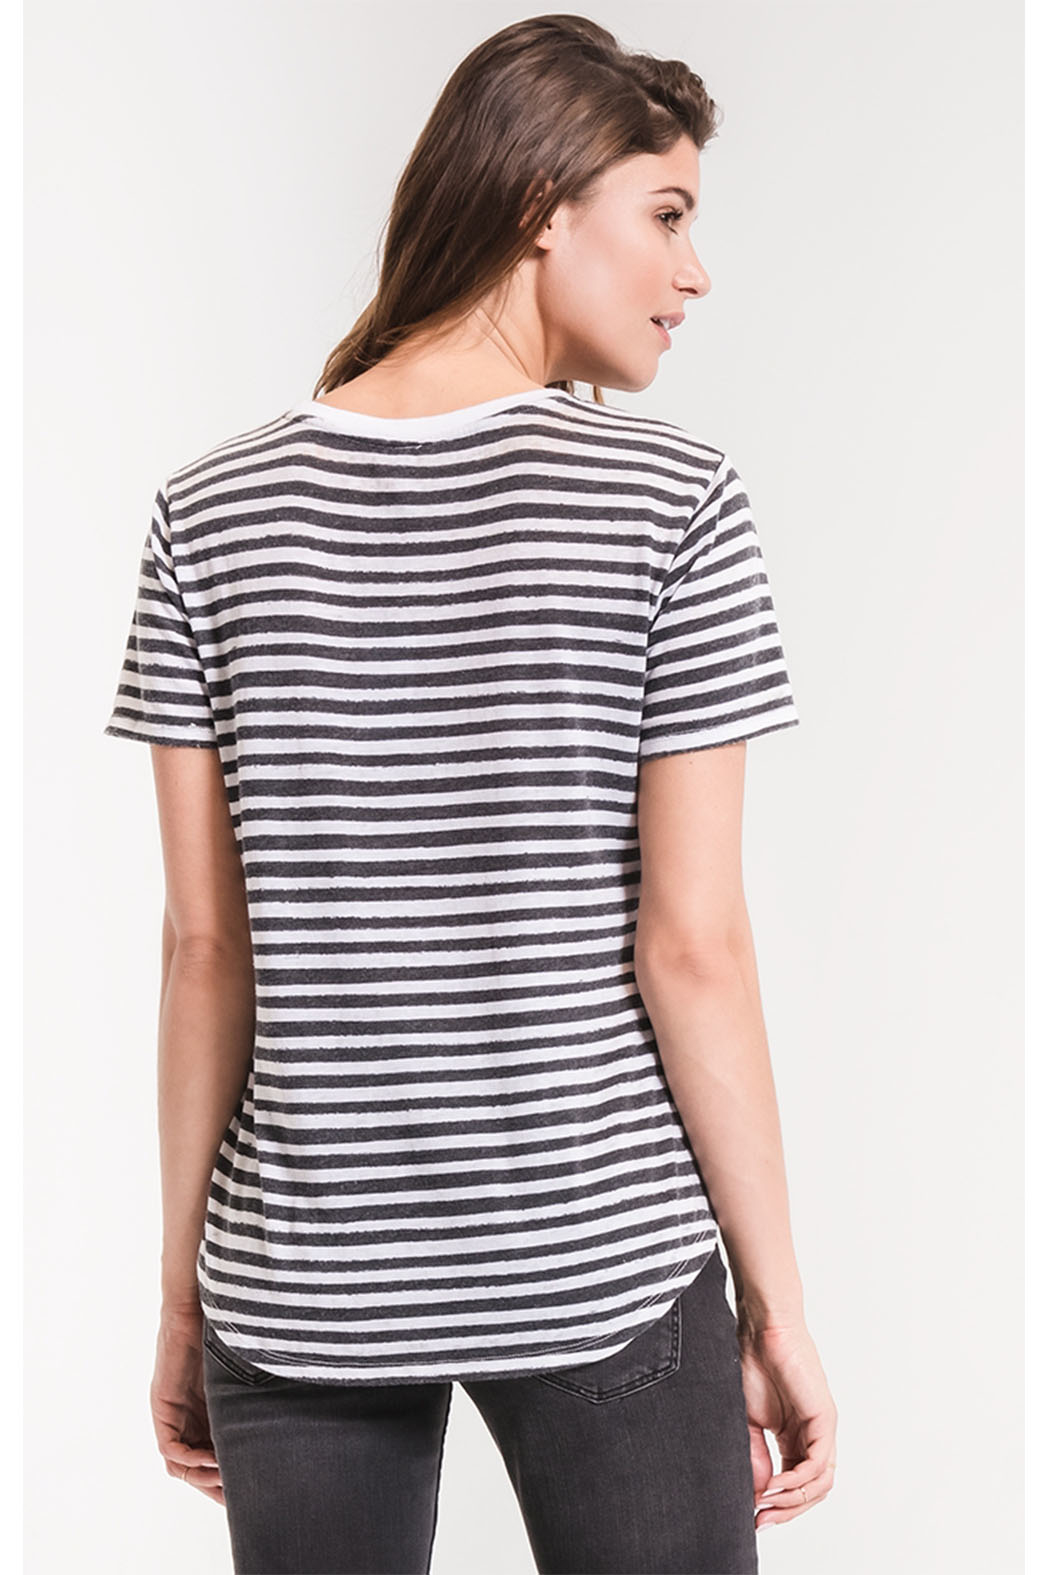 z supply Ultimate Stripe Tee - Back Cropped Image